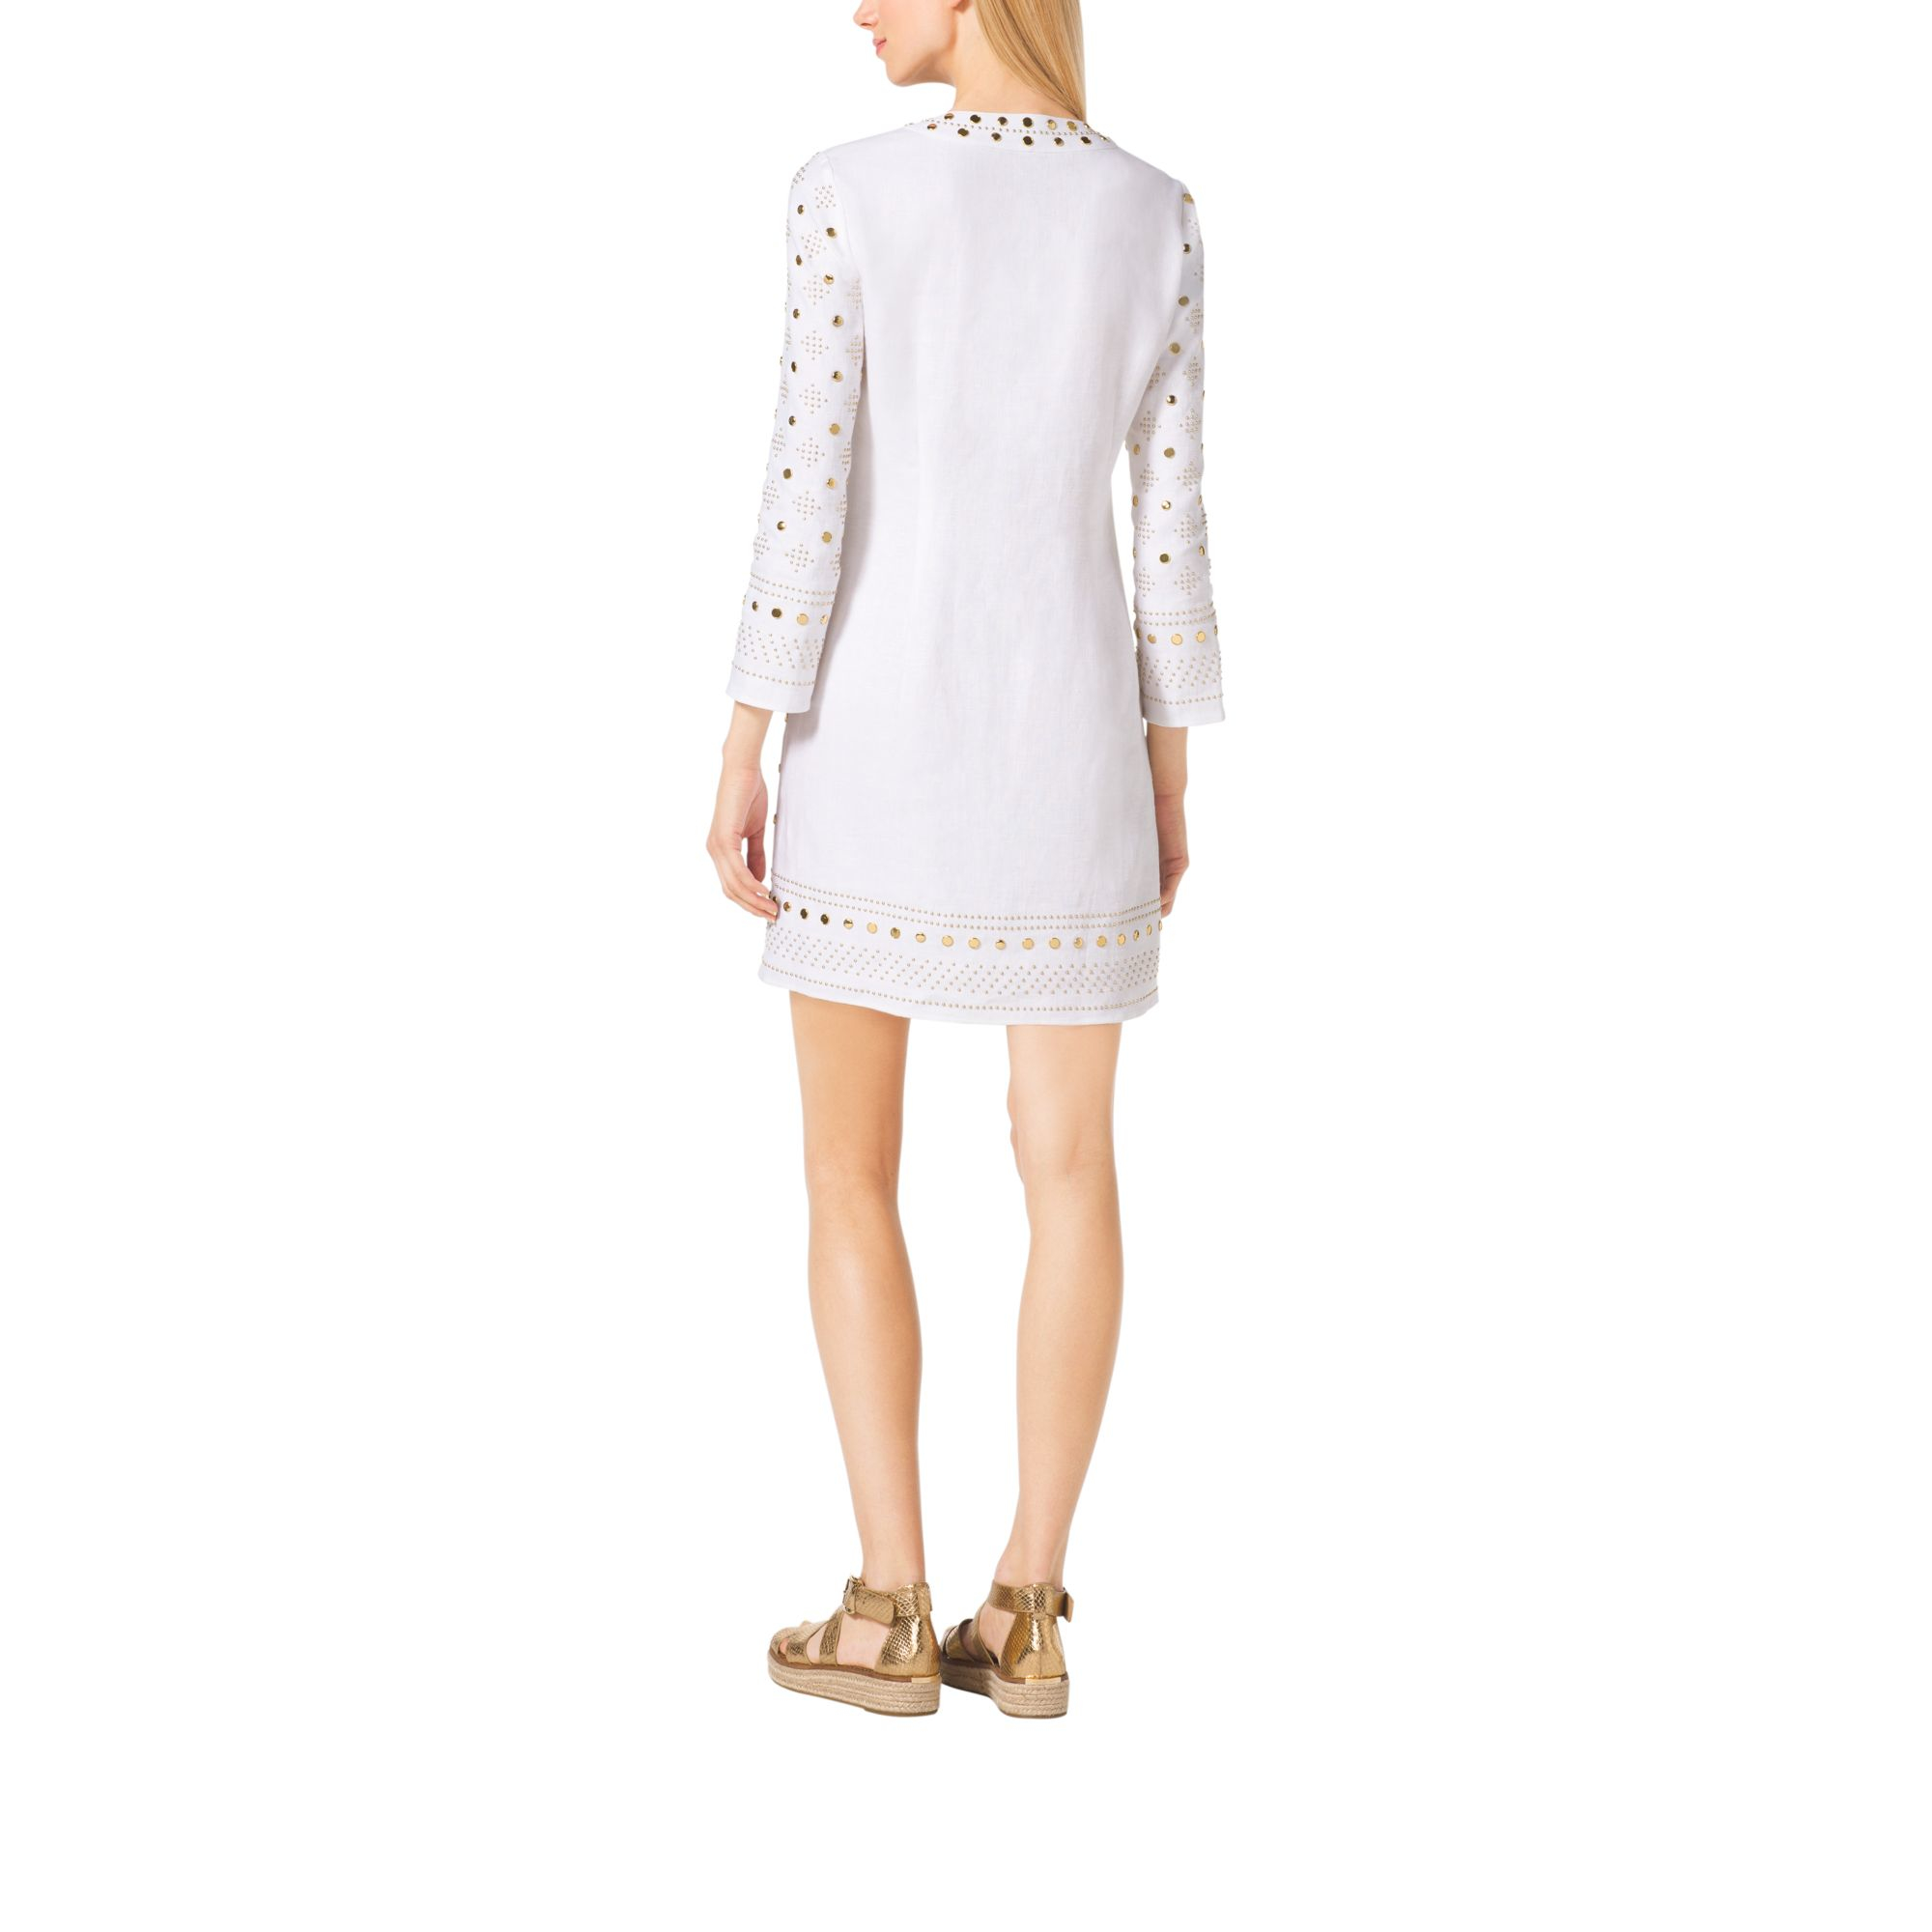 8b3723e3035 Lyst - Michael Kors Embroidered Linen Tunic in White